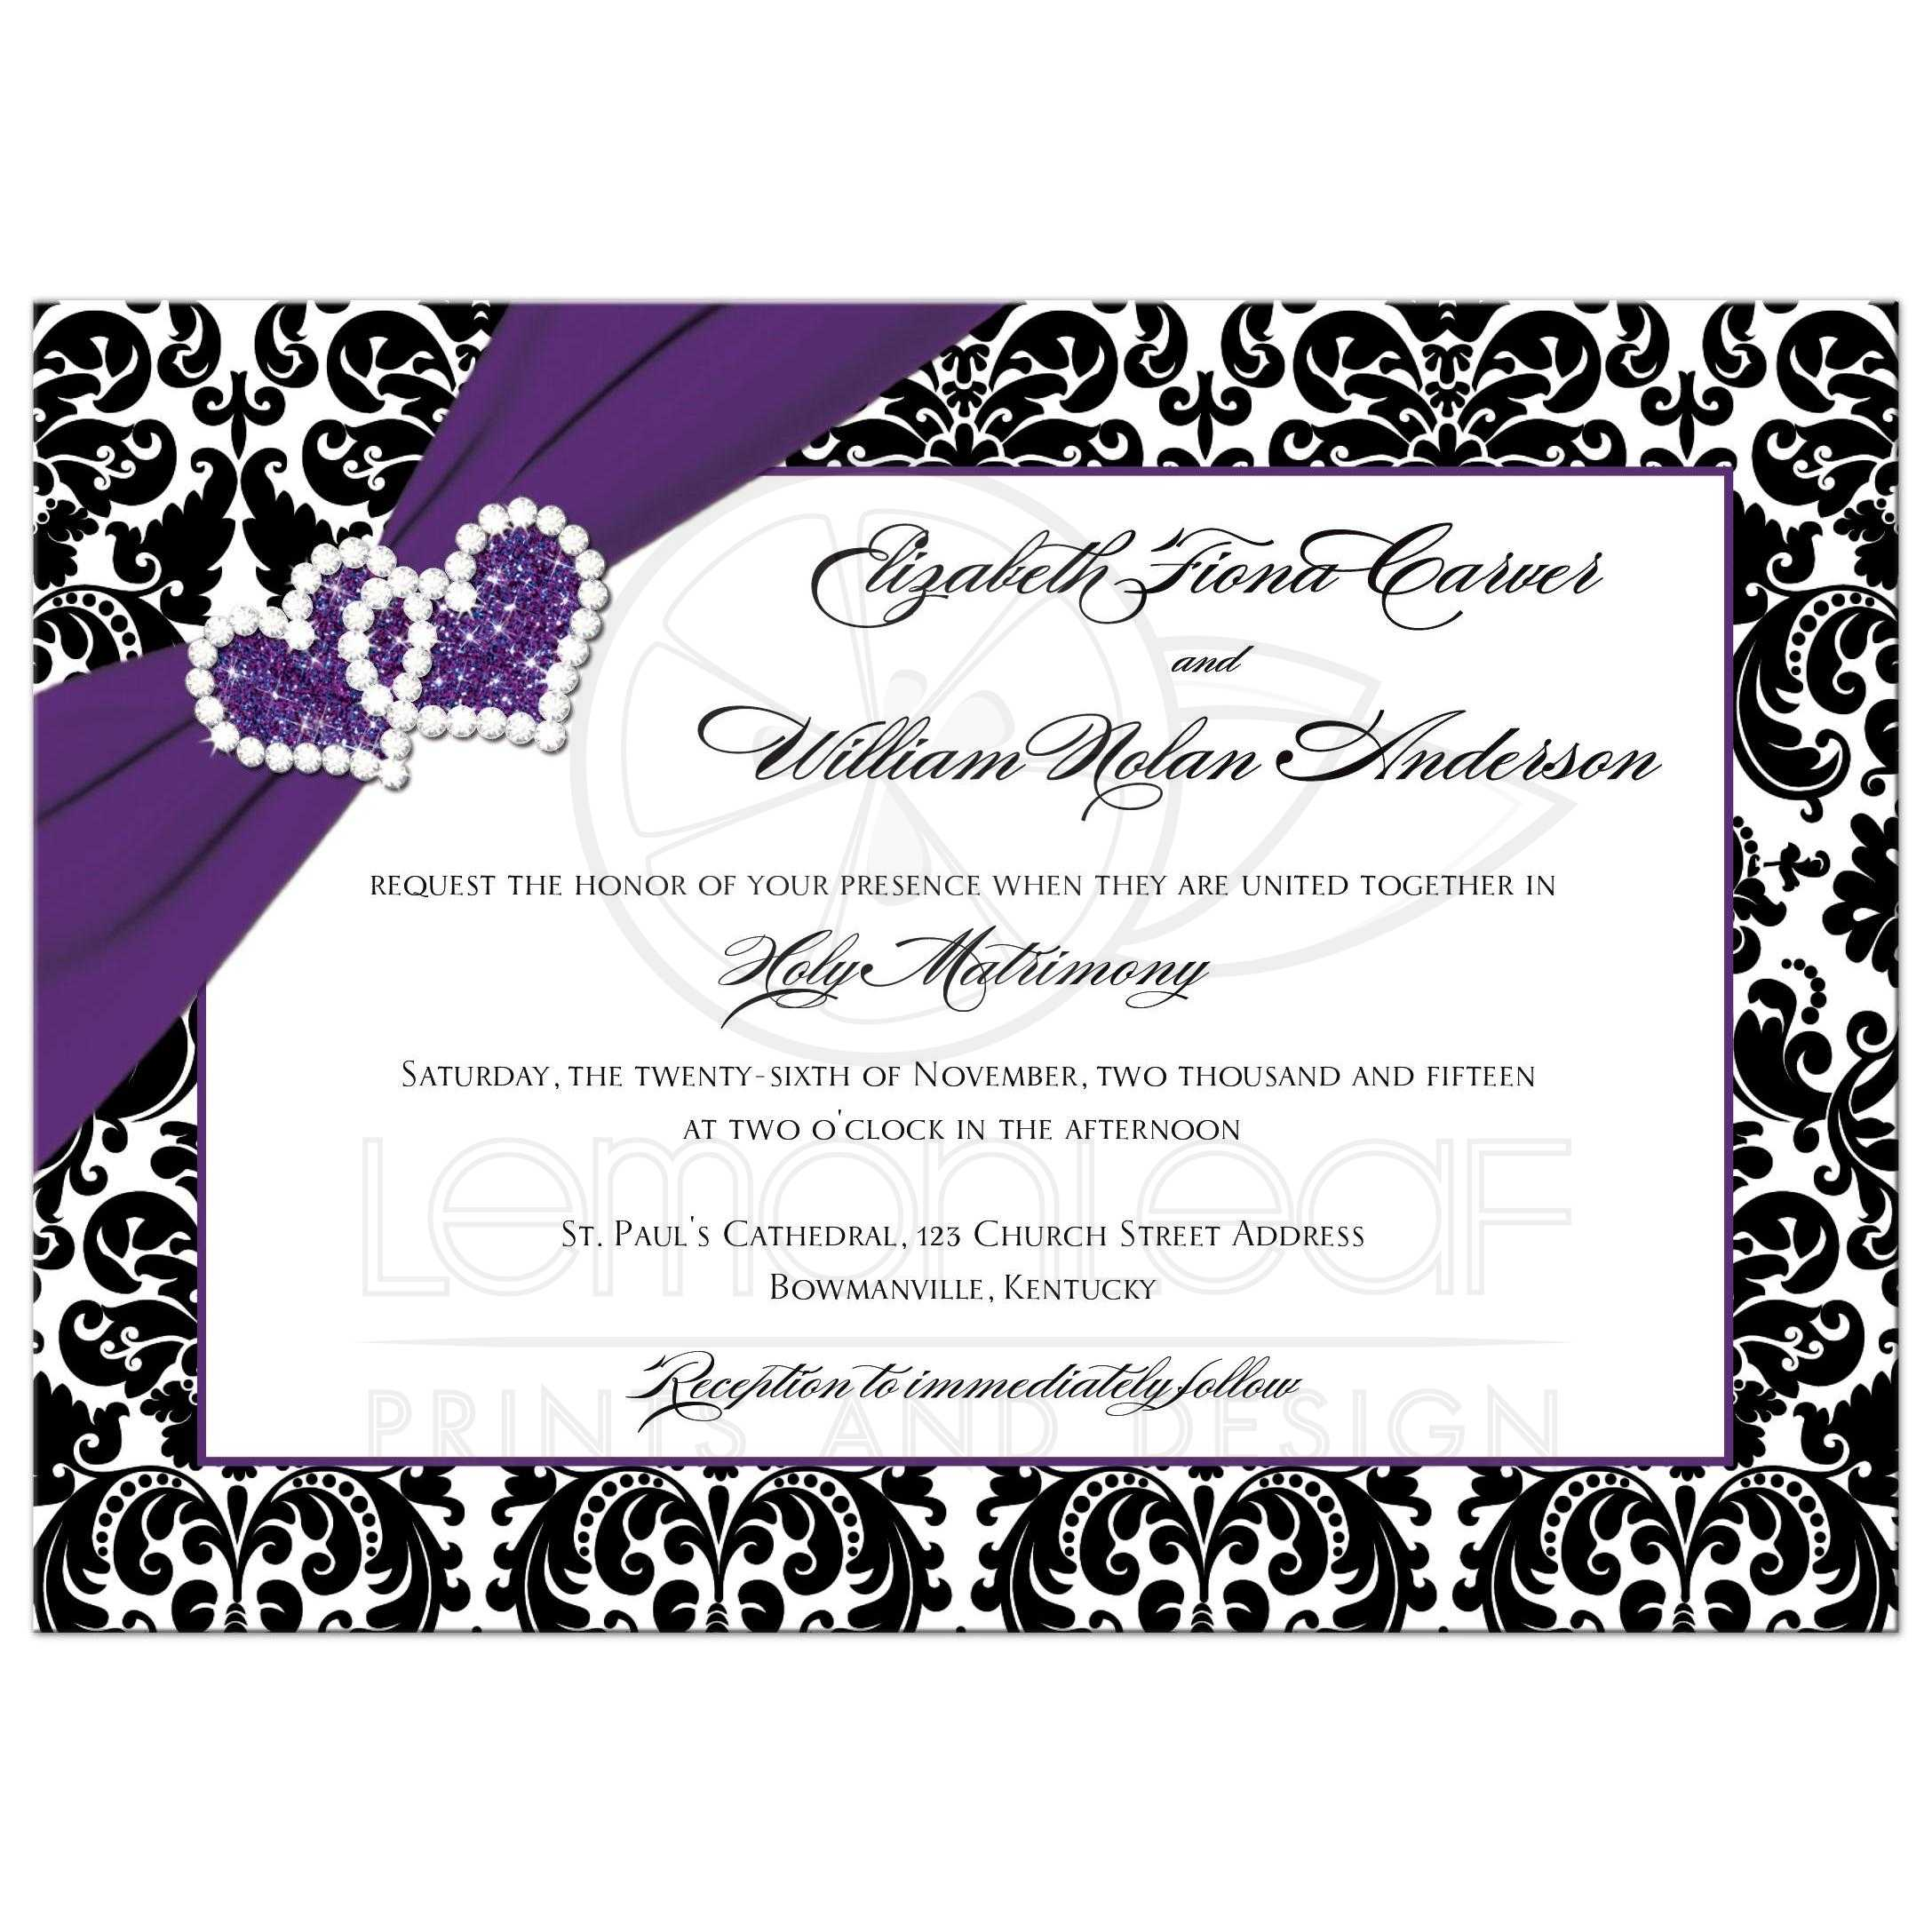 Wedding Invitation | Purple, Black, White Damask | Joined Hearts